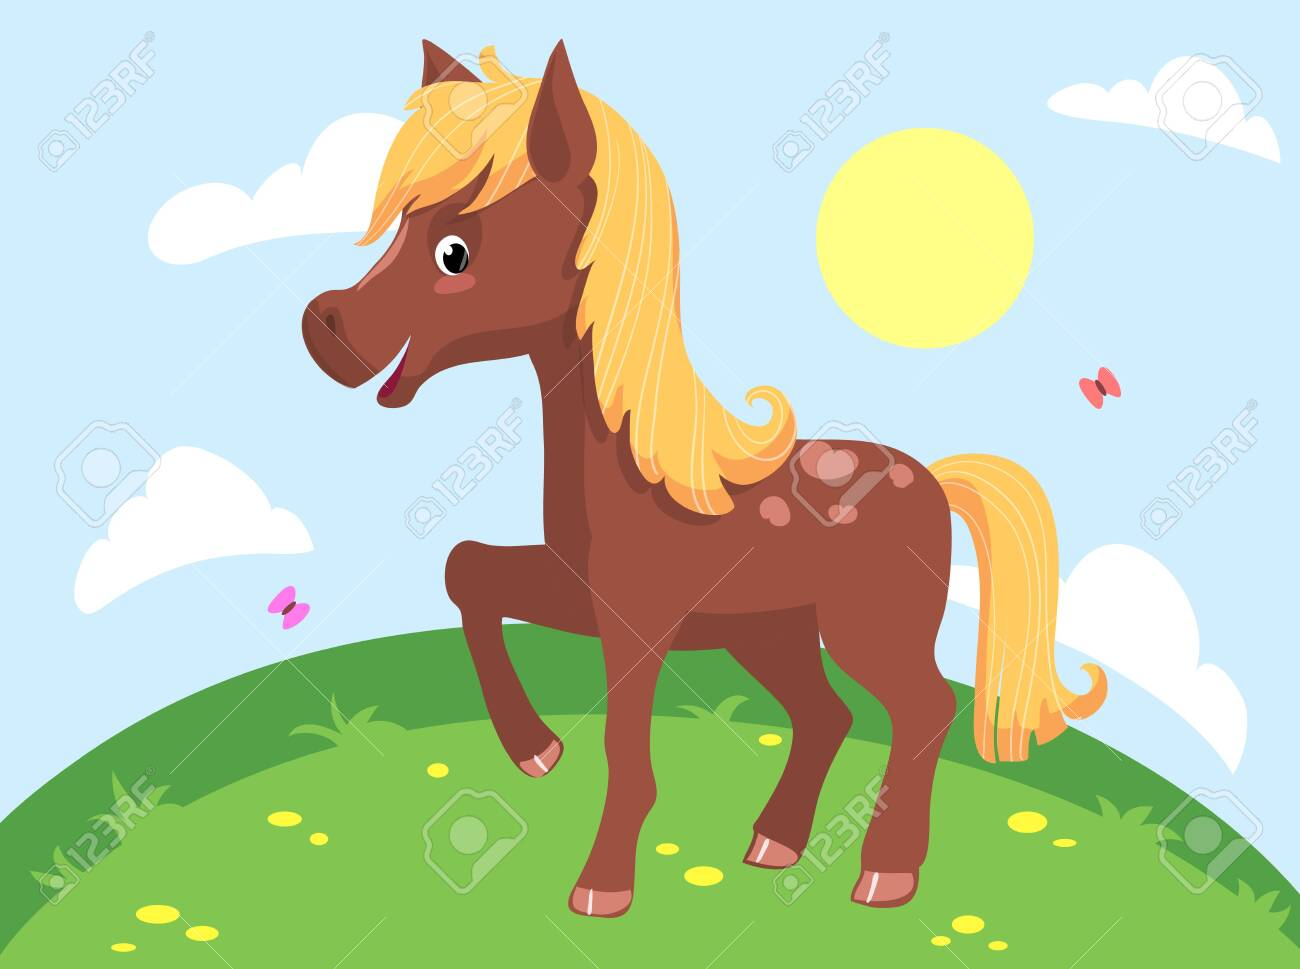 Illustration Of A Cute Funny Horse Vector Clipart Royalty Free Cliparts Vectors And Stock Illustration Image 131357850